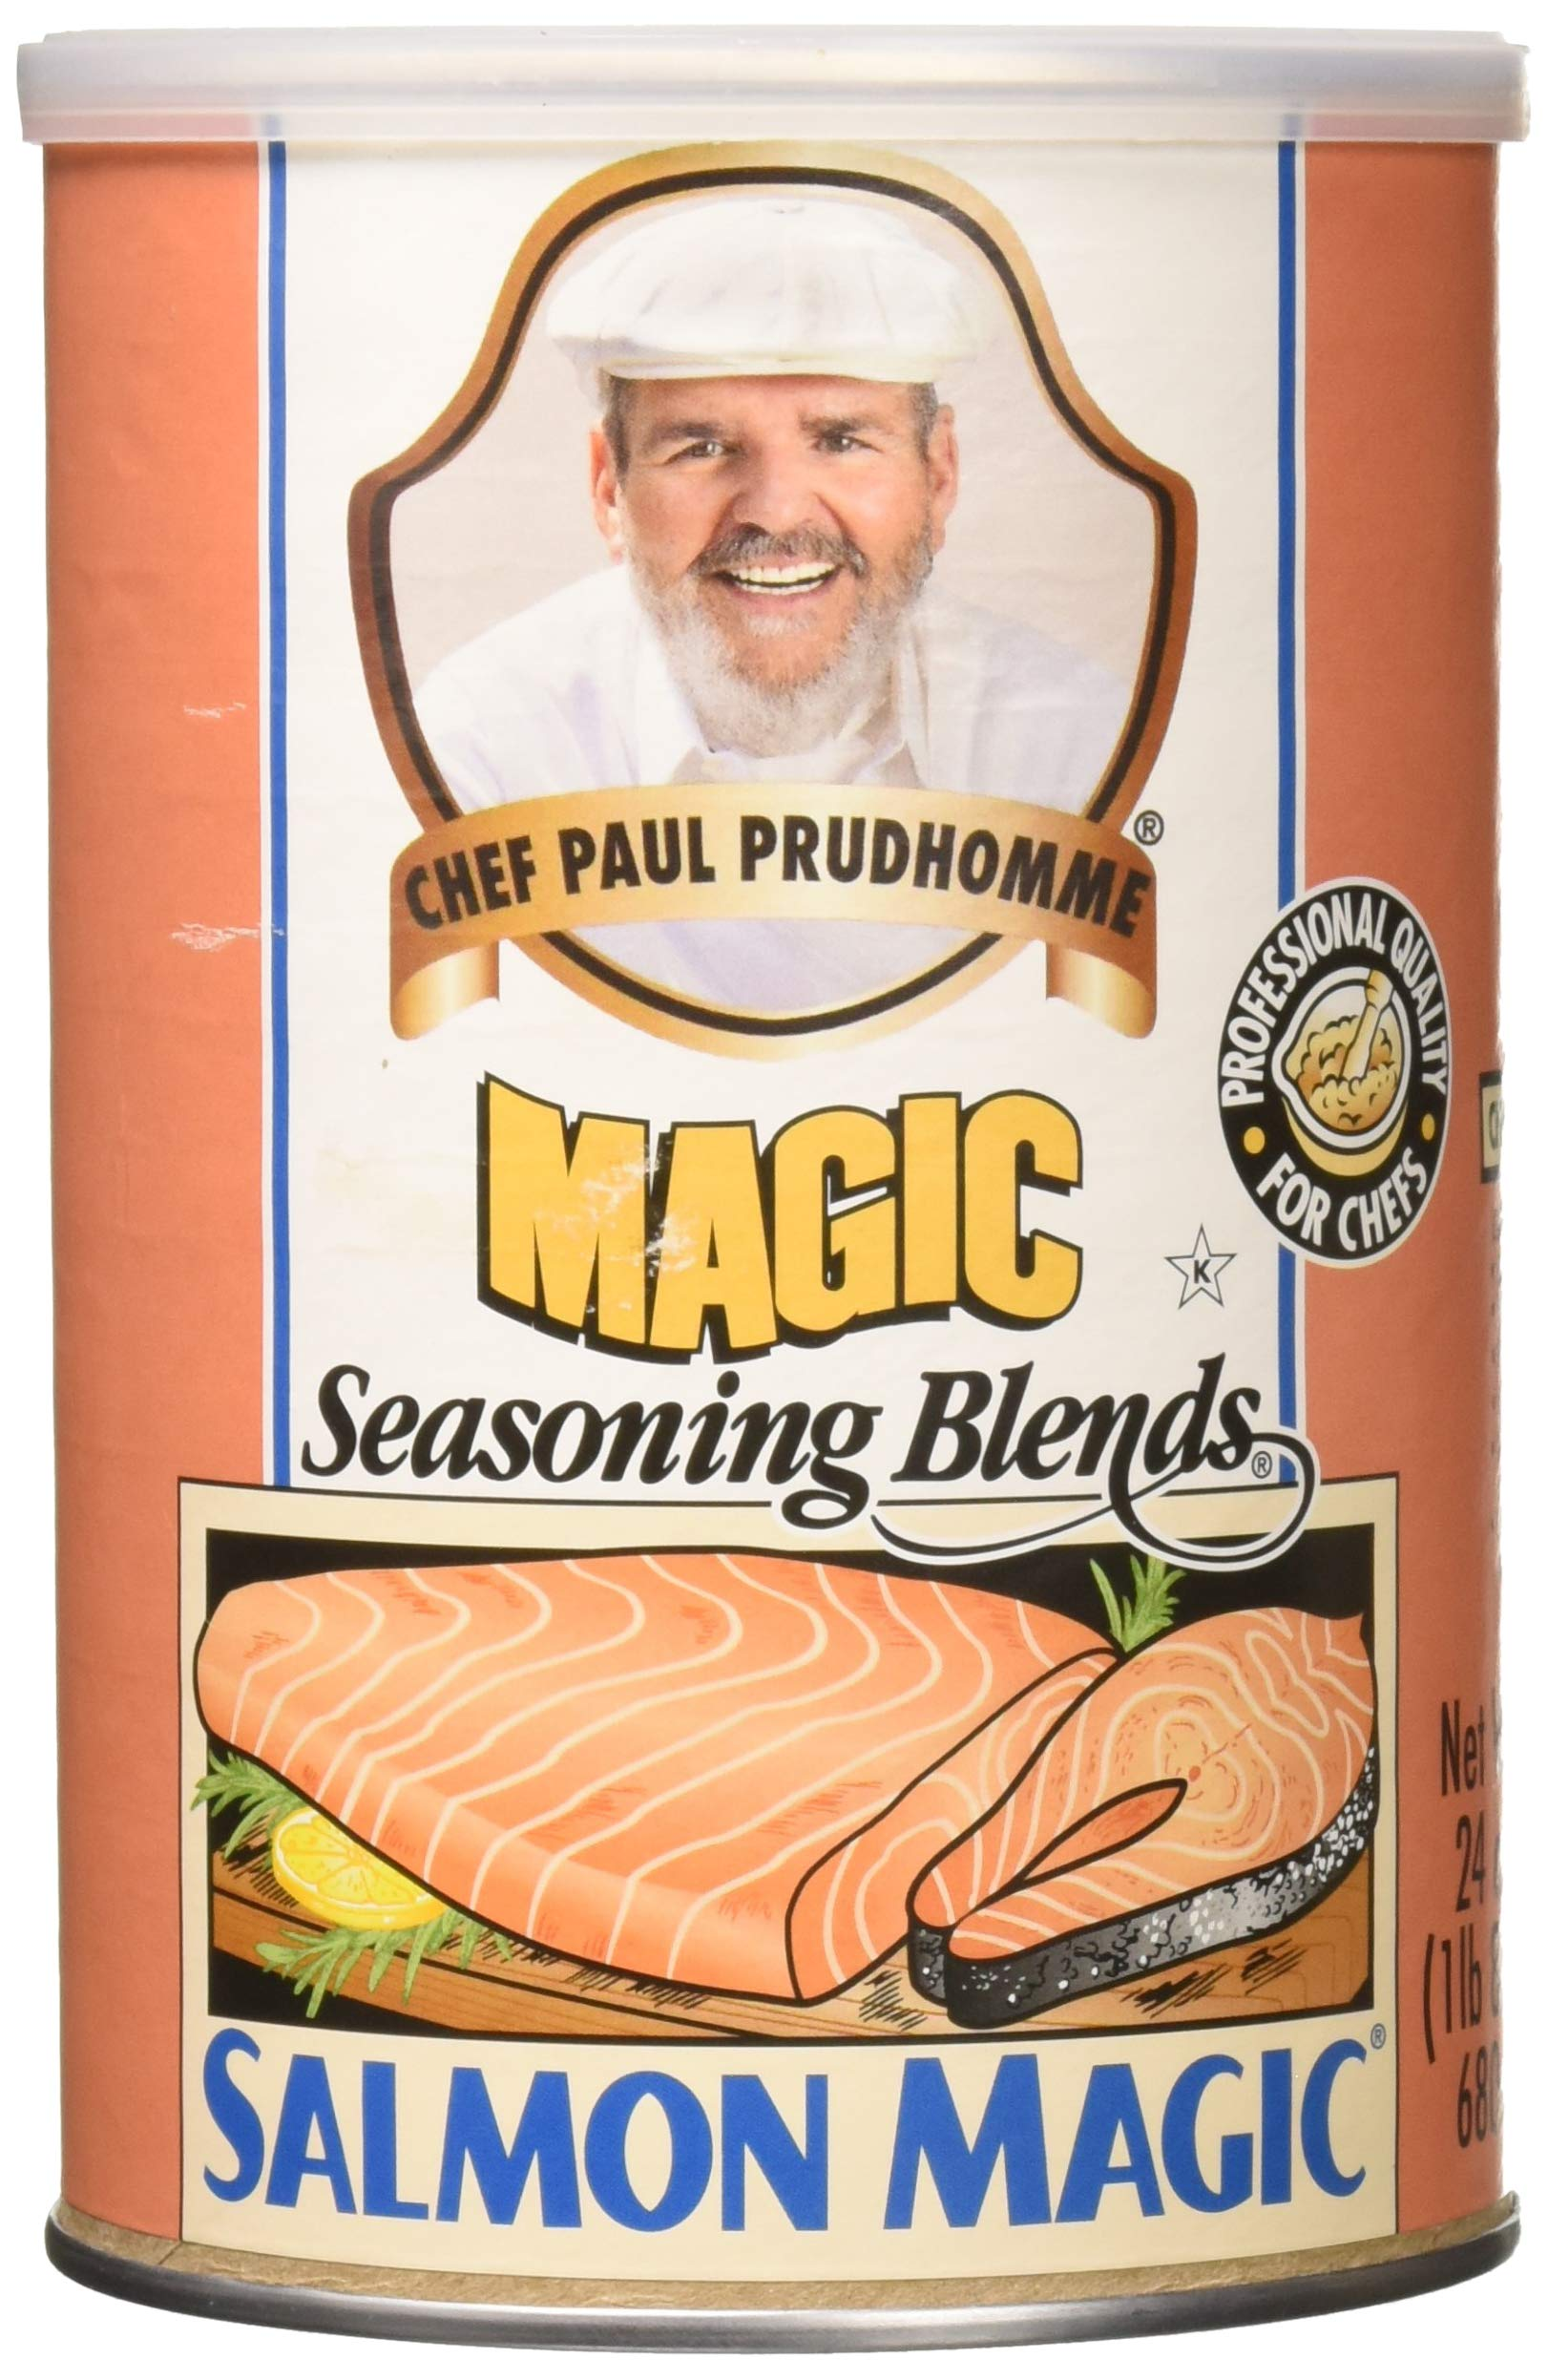 Chef Paul Prudhomme's Magic Seasoning 4 Piece Salmon Magic, 24 Ounce by Chef Paul